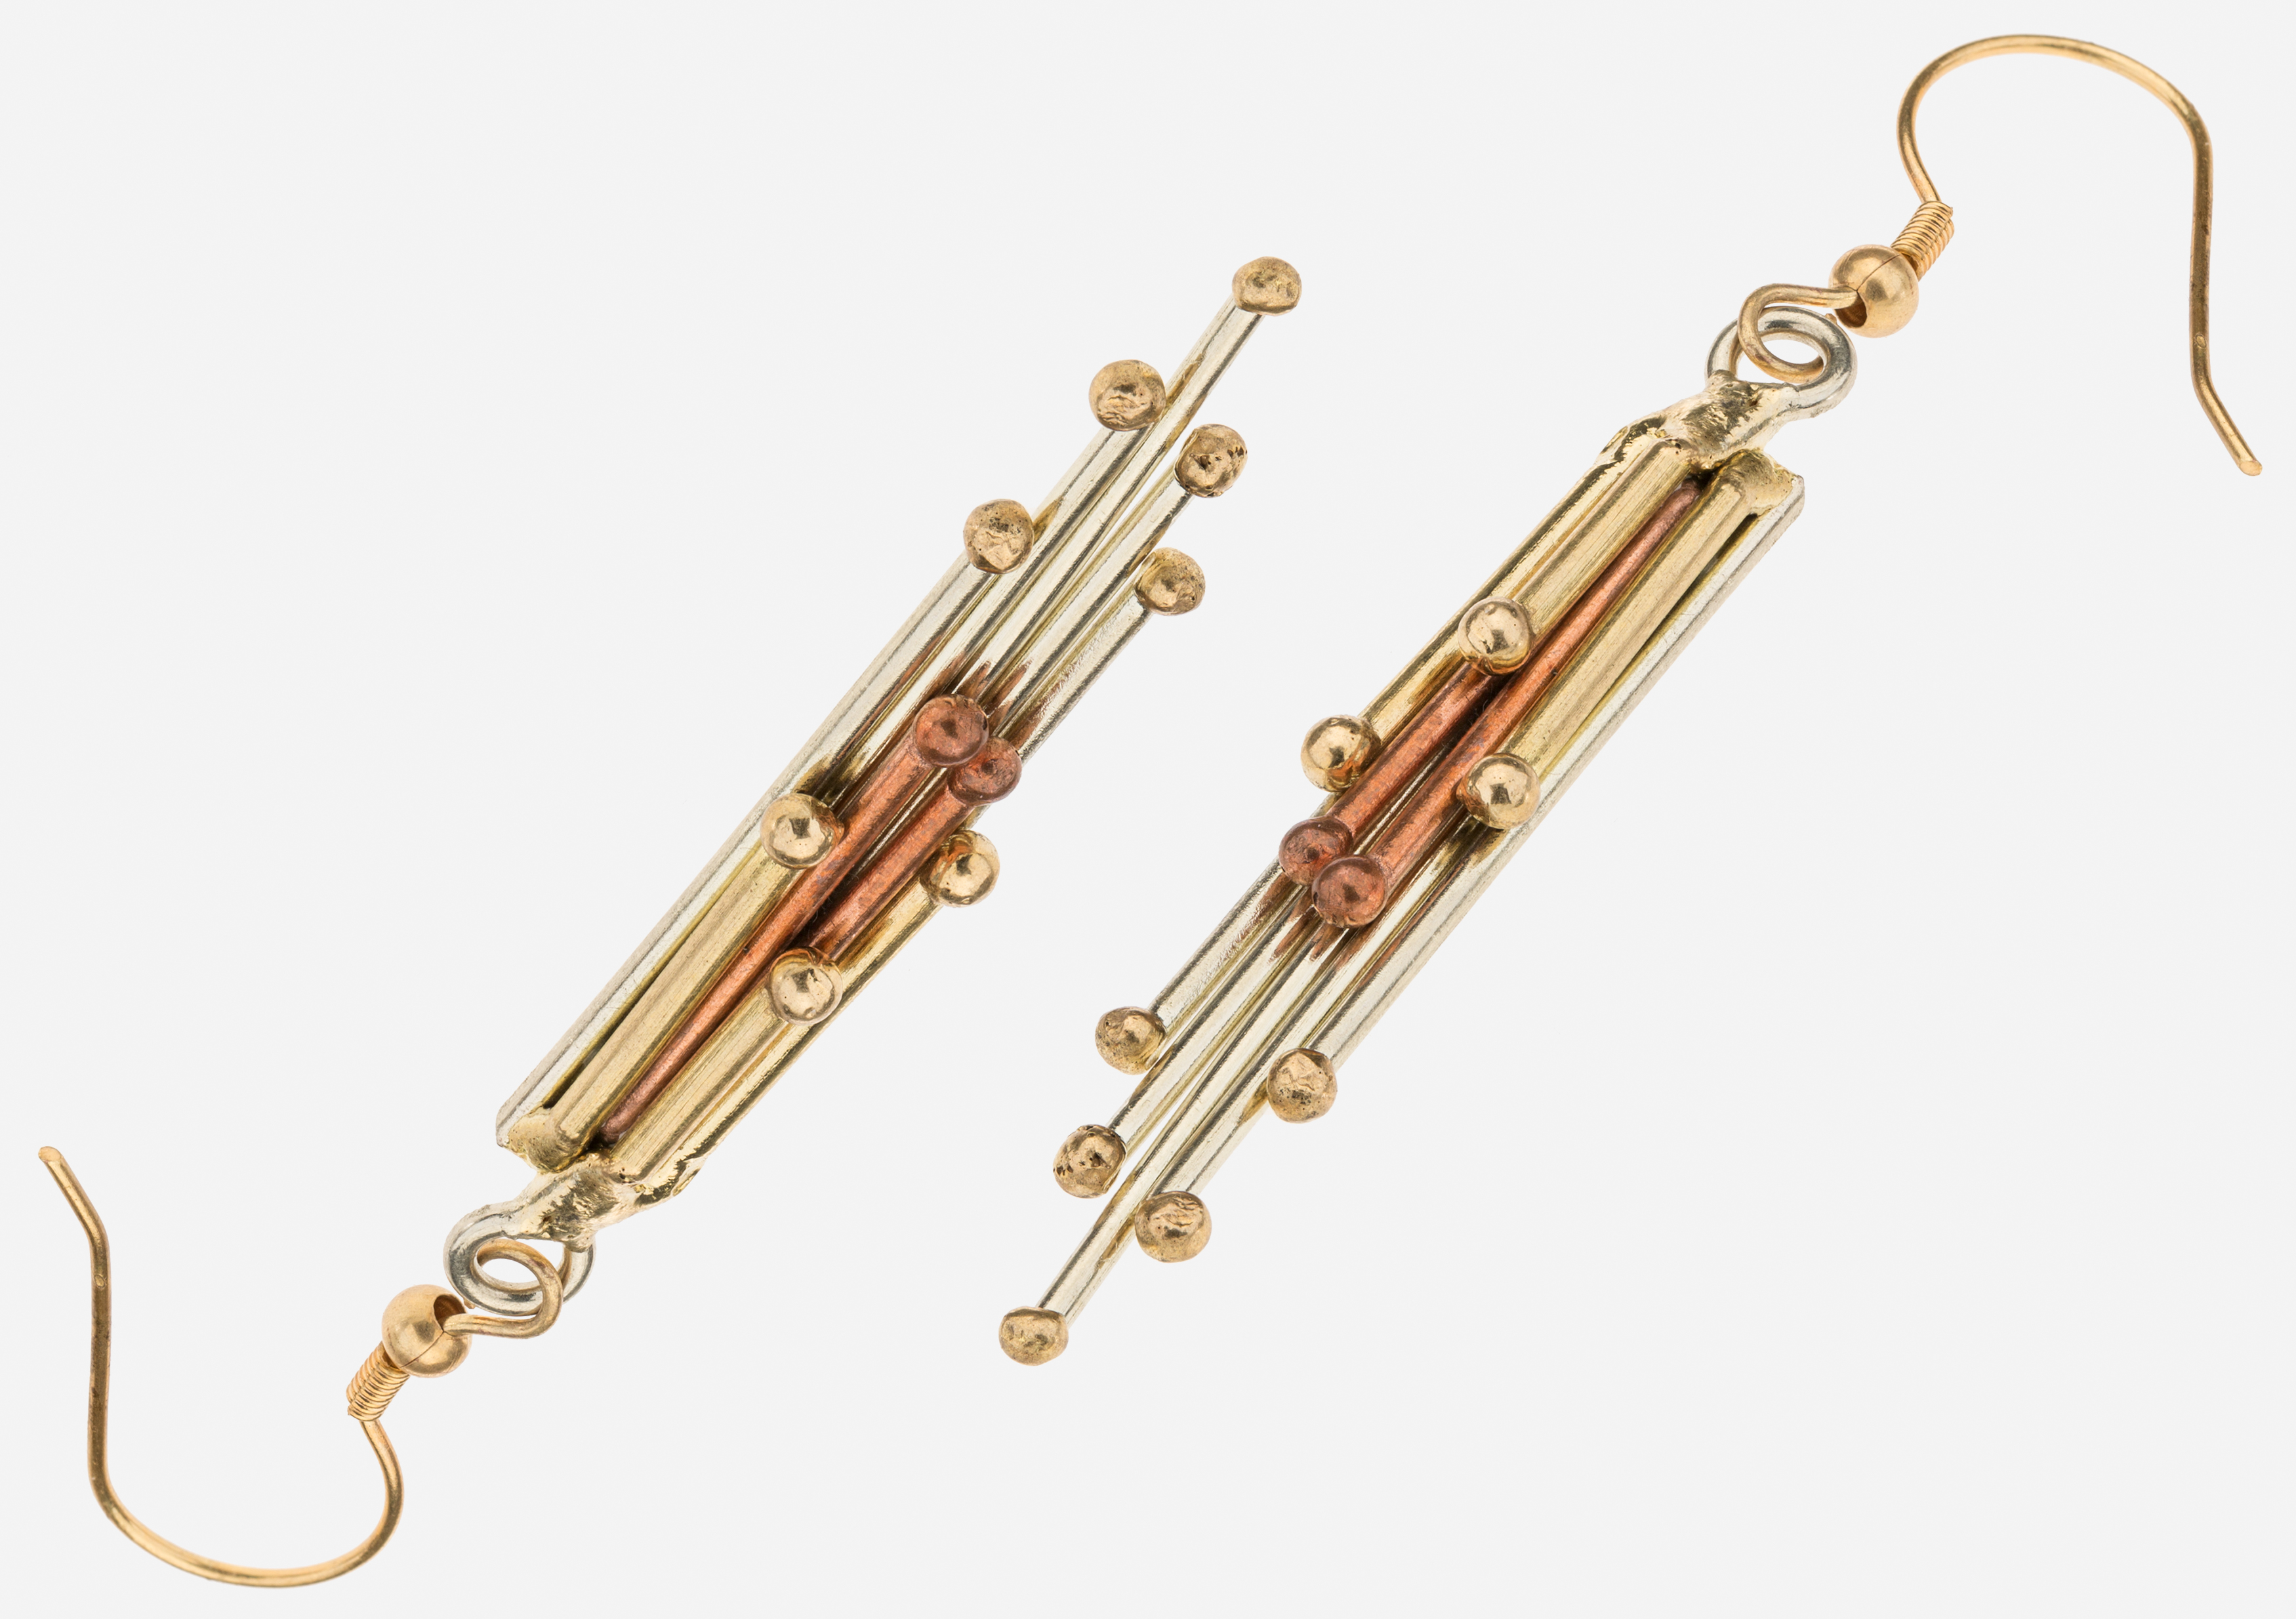 Tara Mesa Dangle Earrings Crafted in German Silver, Brass and Copper